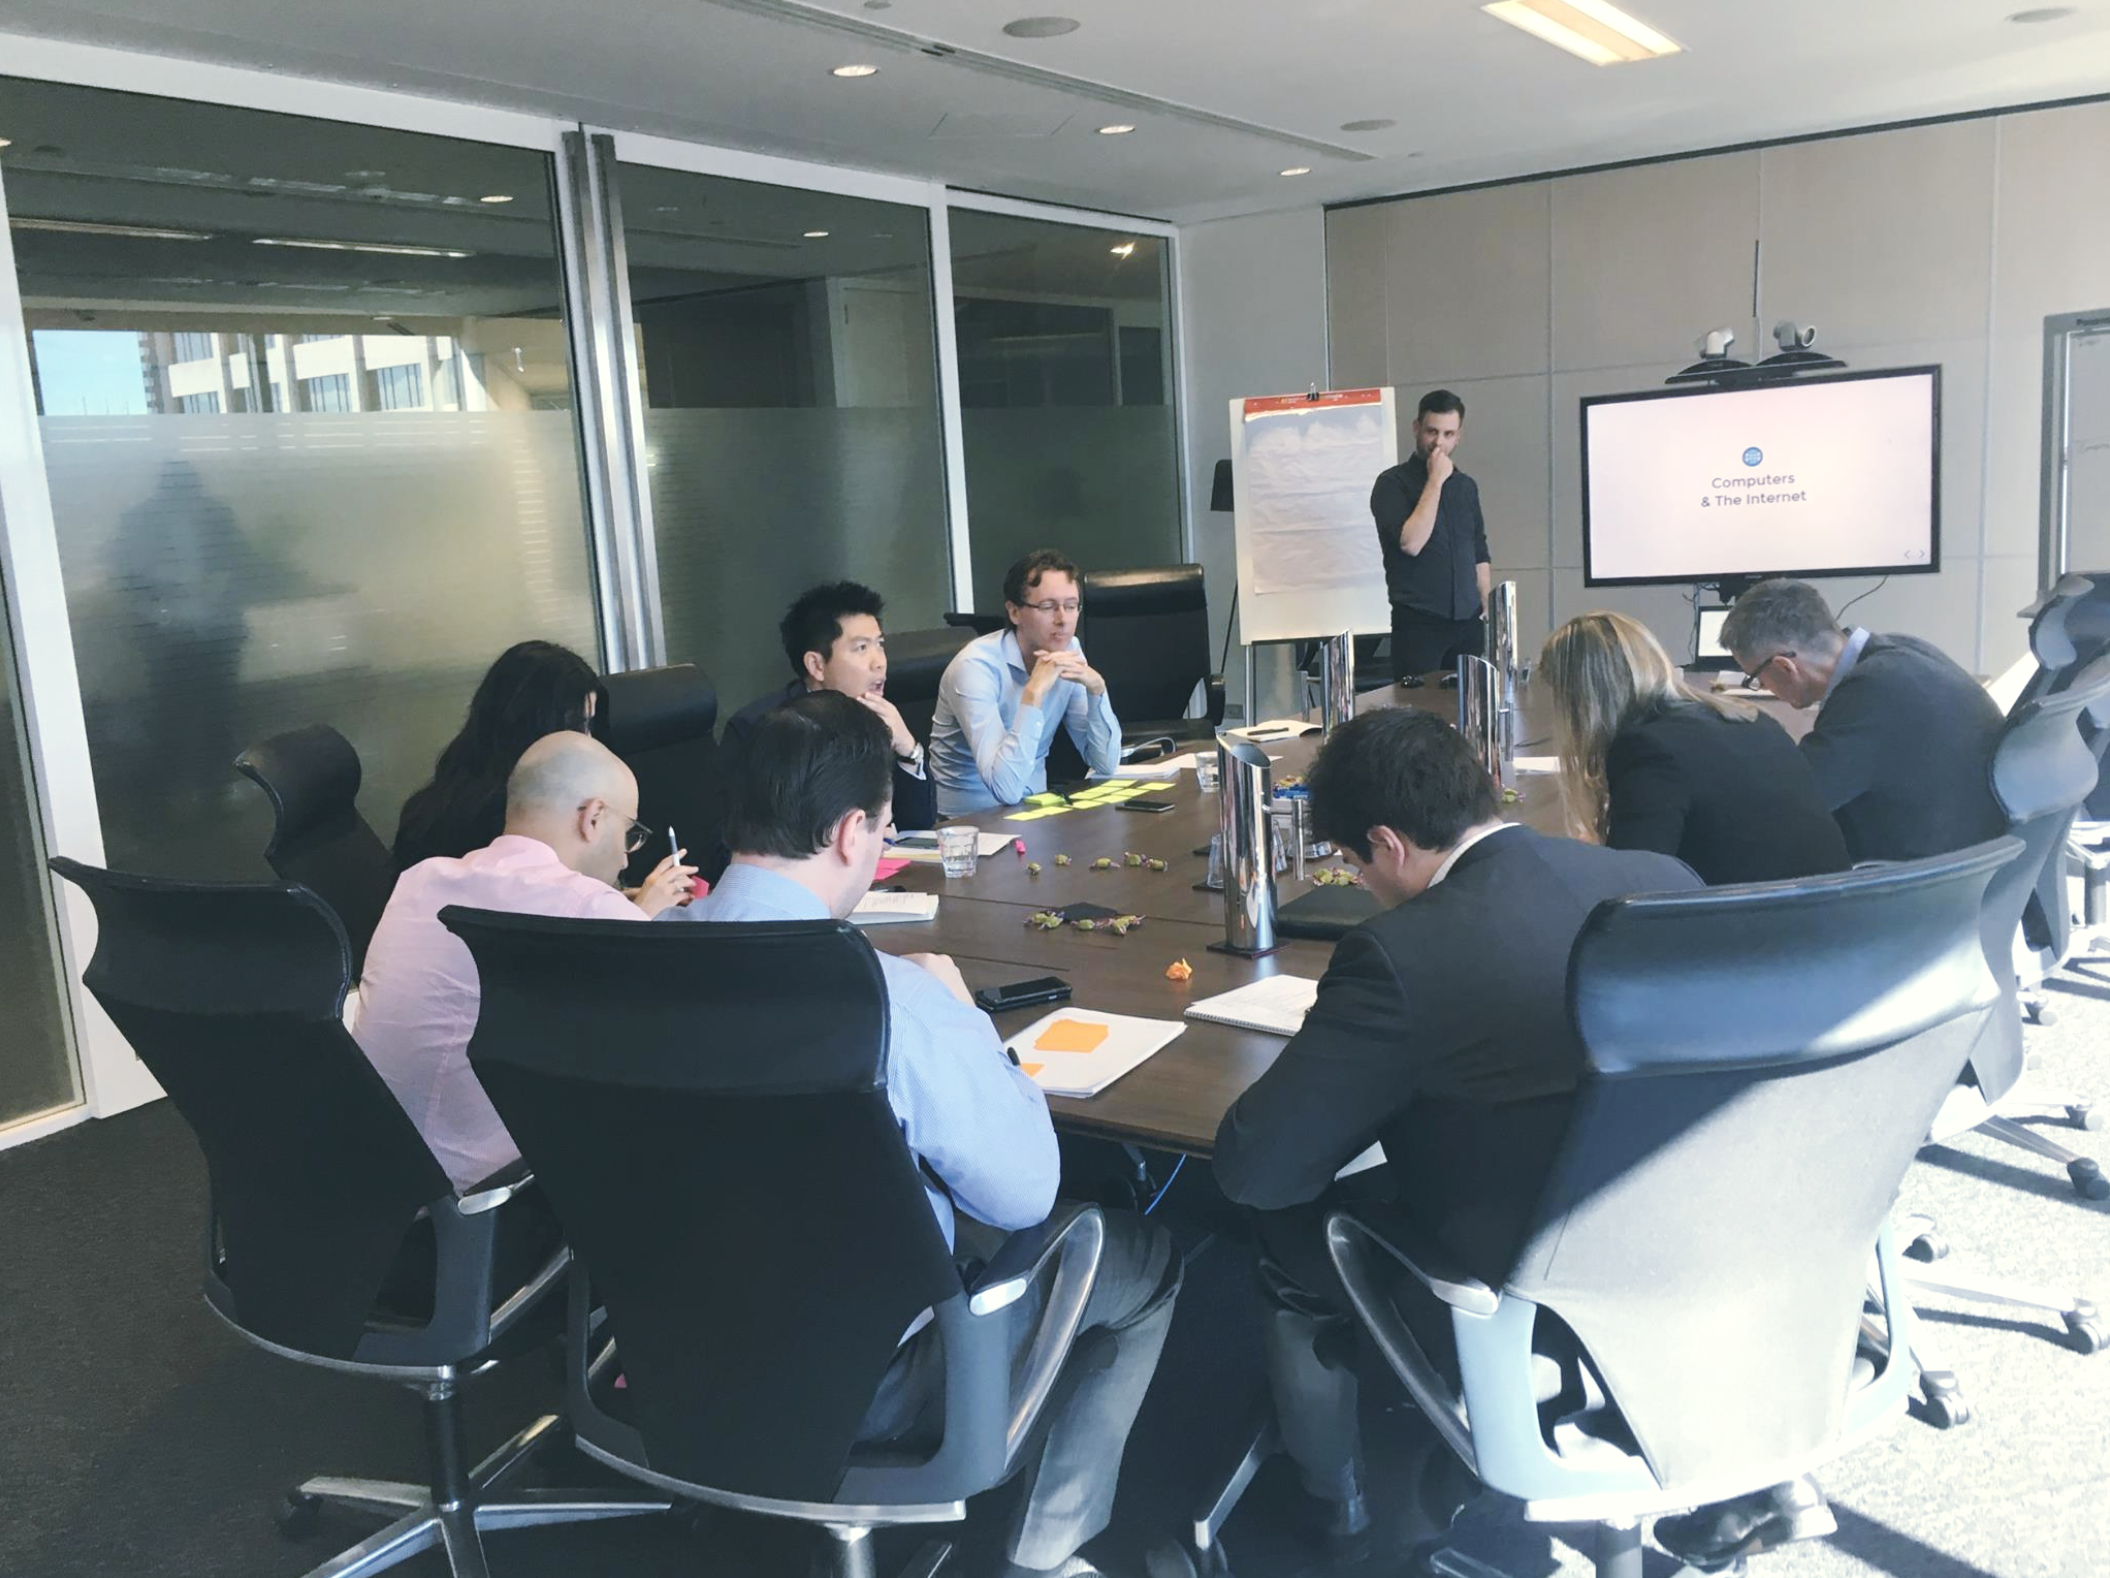 Collective Campus delivered a 1-day 'Digital Awareness' course for lawyers across Sydney, Singapore and Hong Kong.